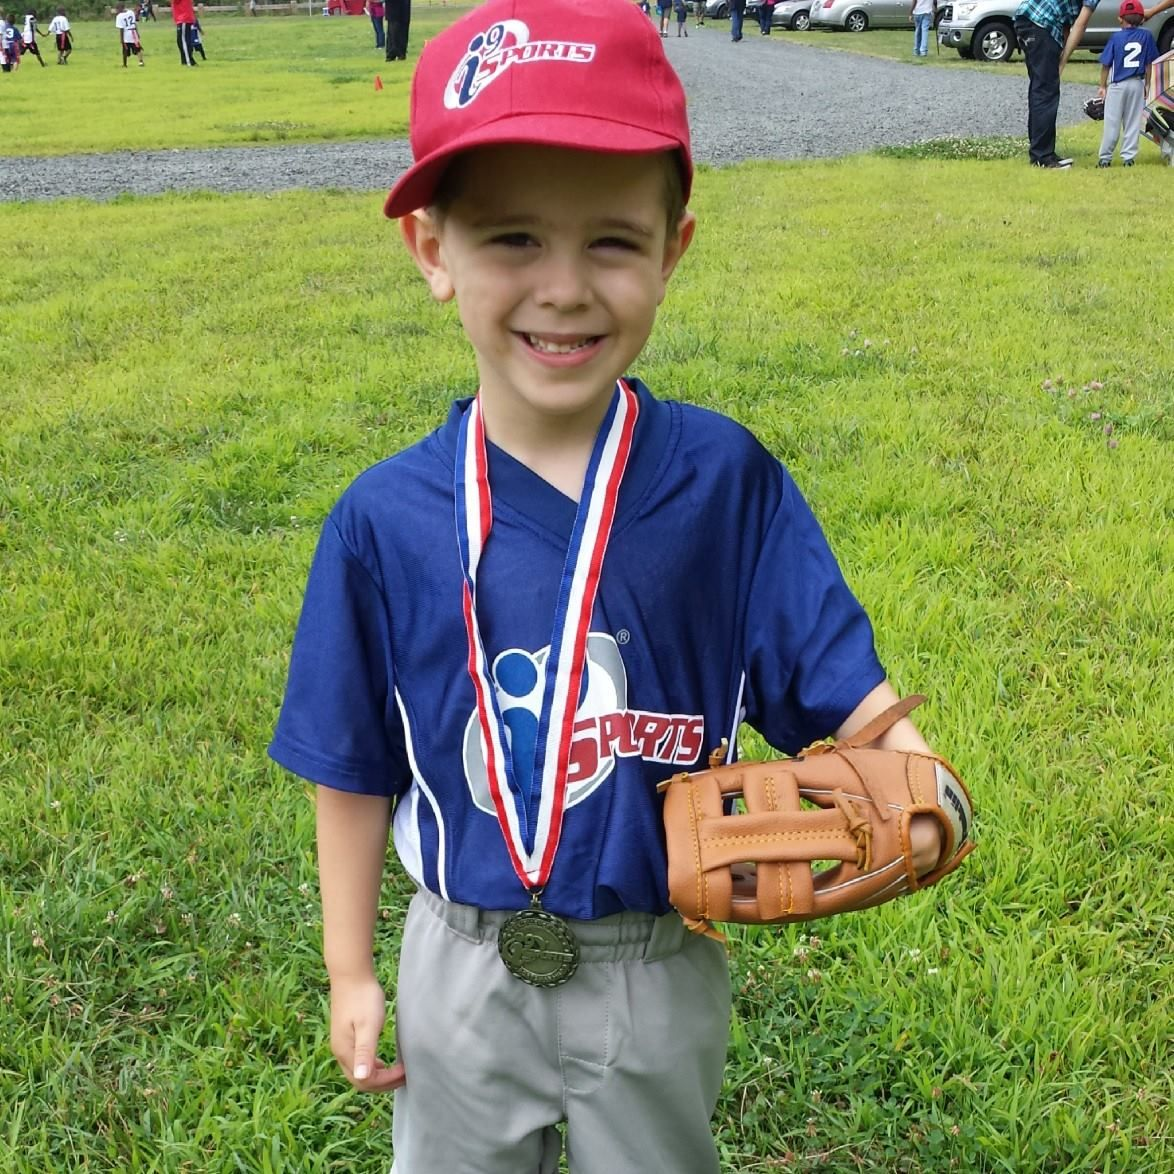 Learning Good Sportsmanship Is One Of The Most Important Things Kids Learn In Youth Sports I9sports Youth Sports Sportsmanship Helping Kids